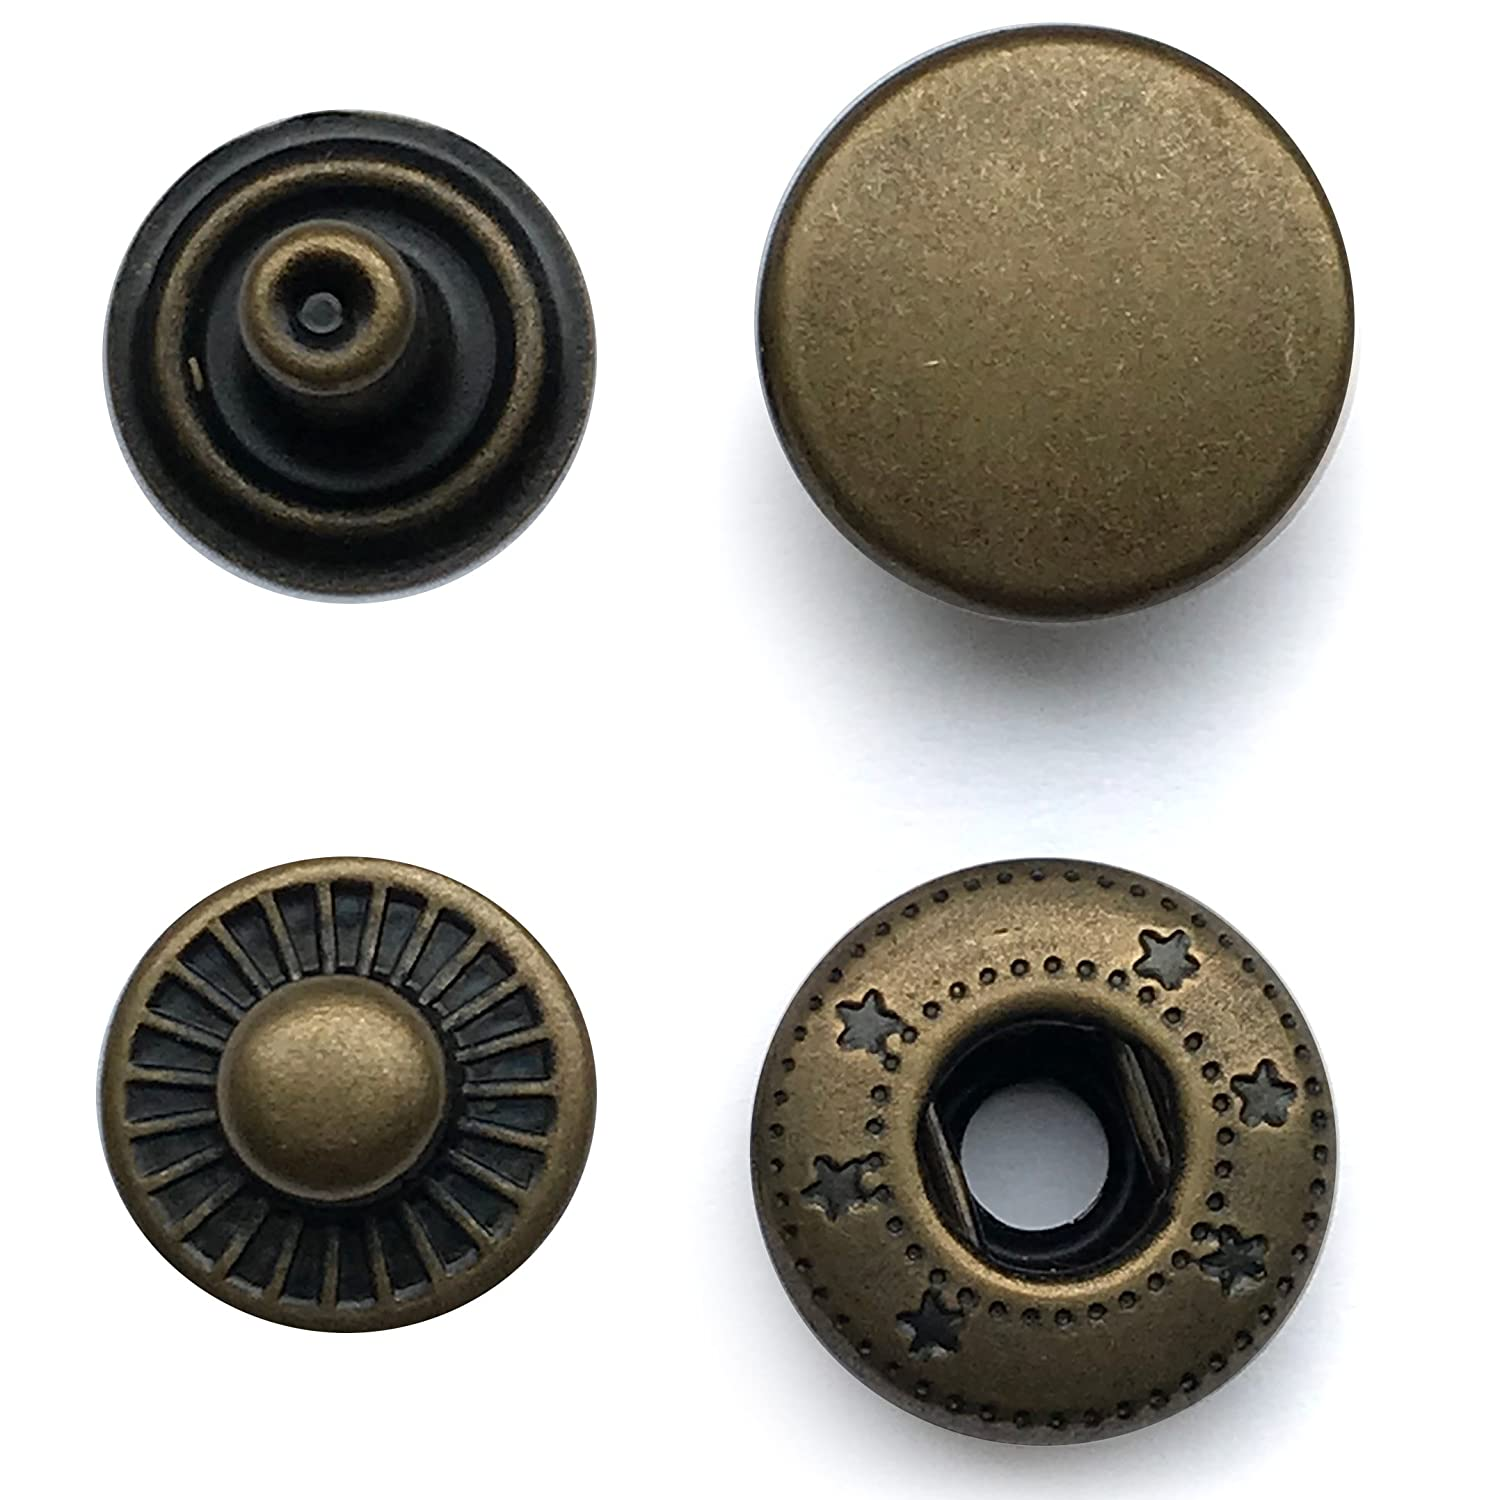 100 sets of 15mm snaps in Antique Brass colour. Nickel Free Poppers, Snap fasteners, Press studs for Sewing, Leather craft. Belts, Clothes or Bags. Solid Brass Material.